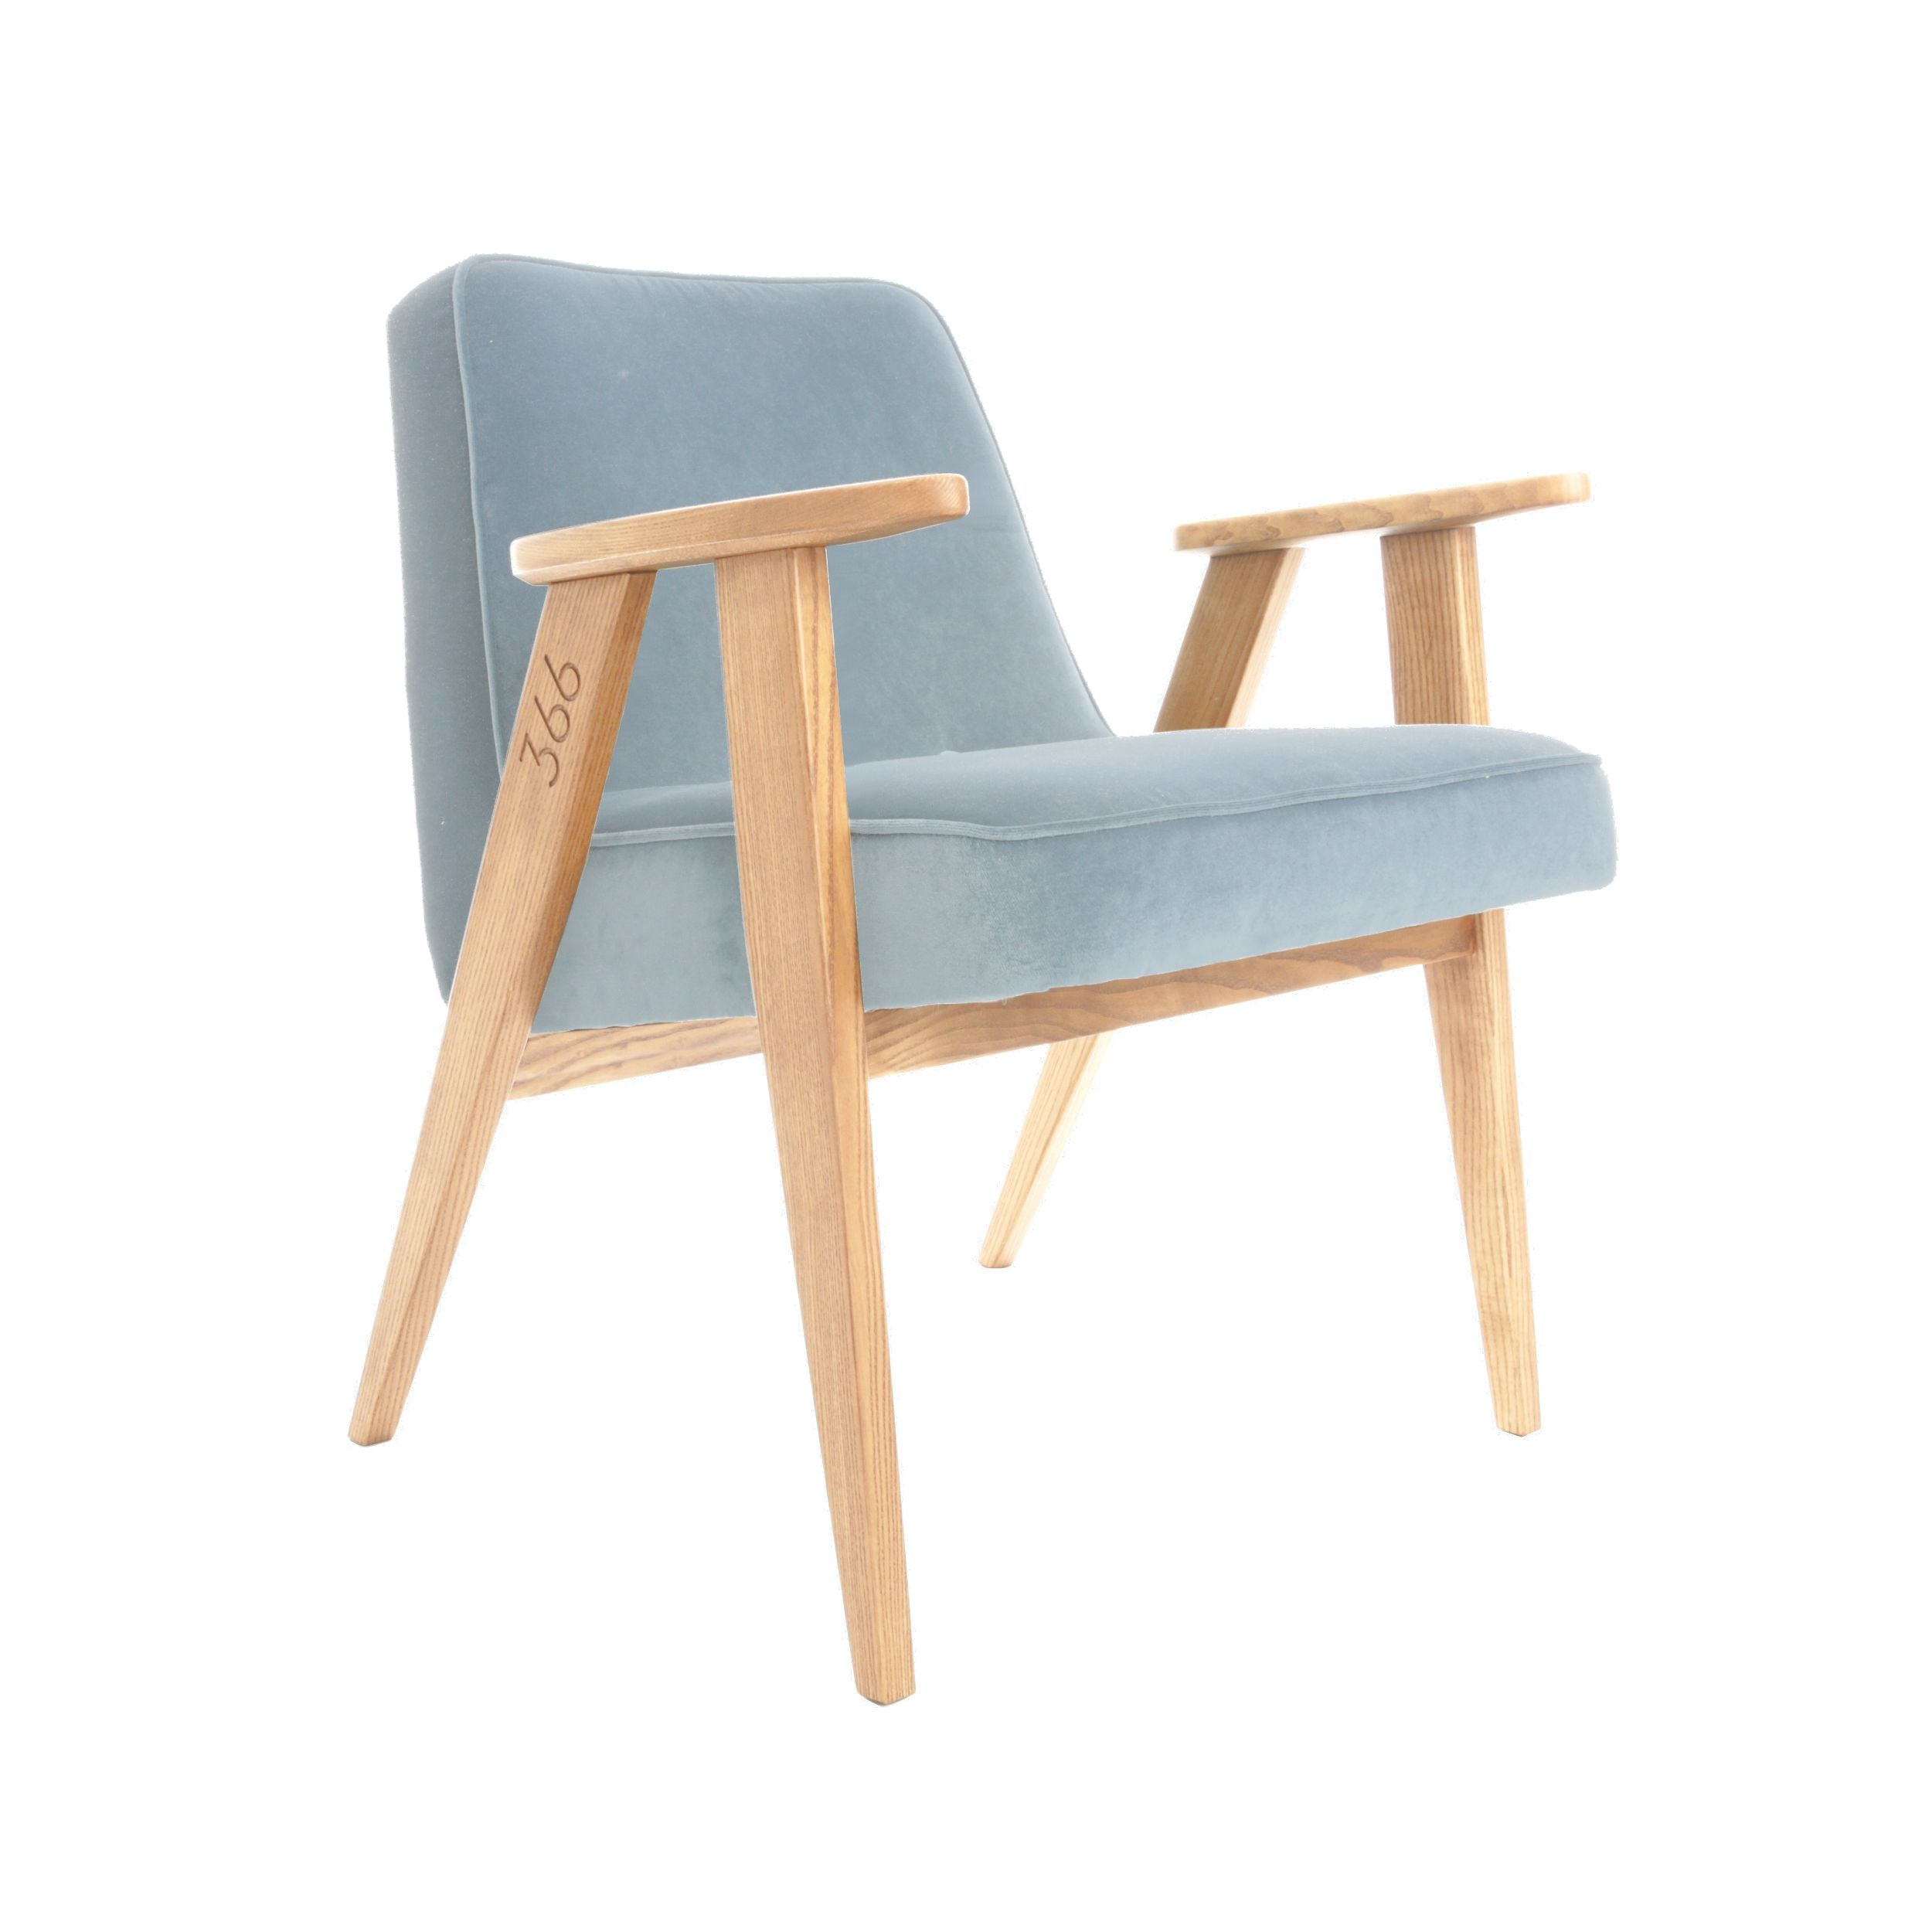 Chaise Enfant Accoudoir Velvet Blue Oak Kids Furniture Pinterest Muebles